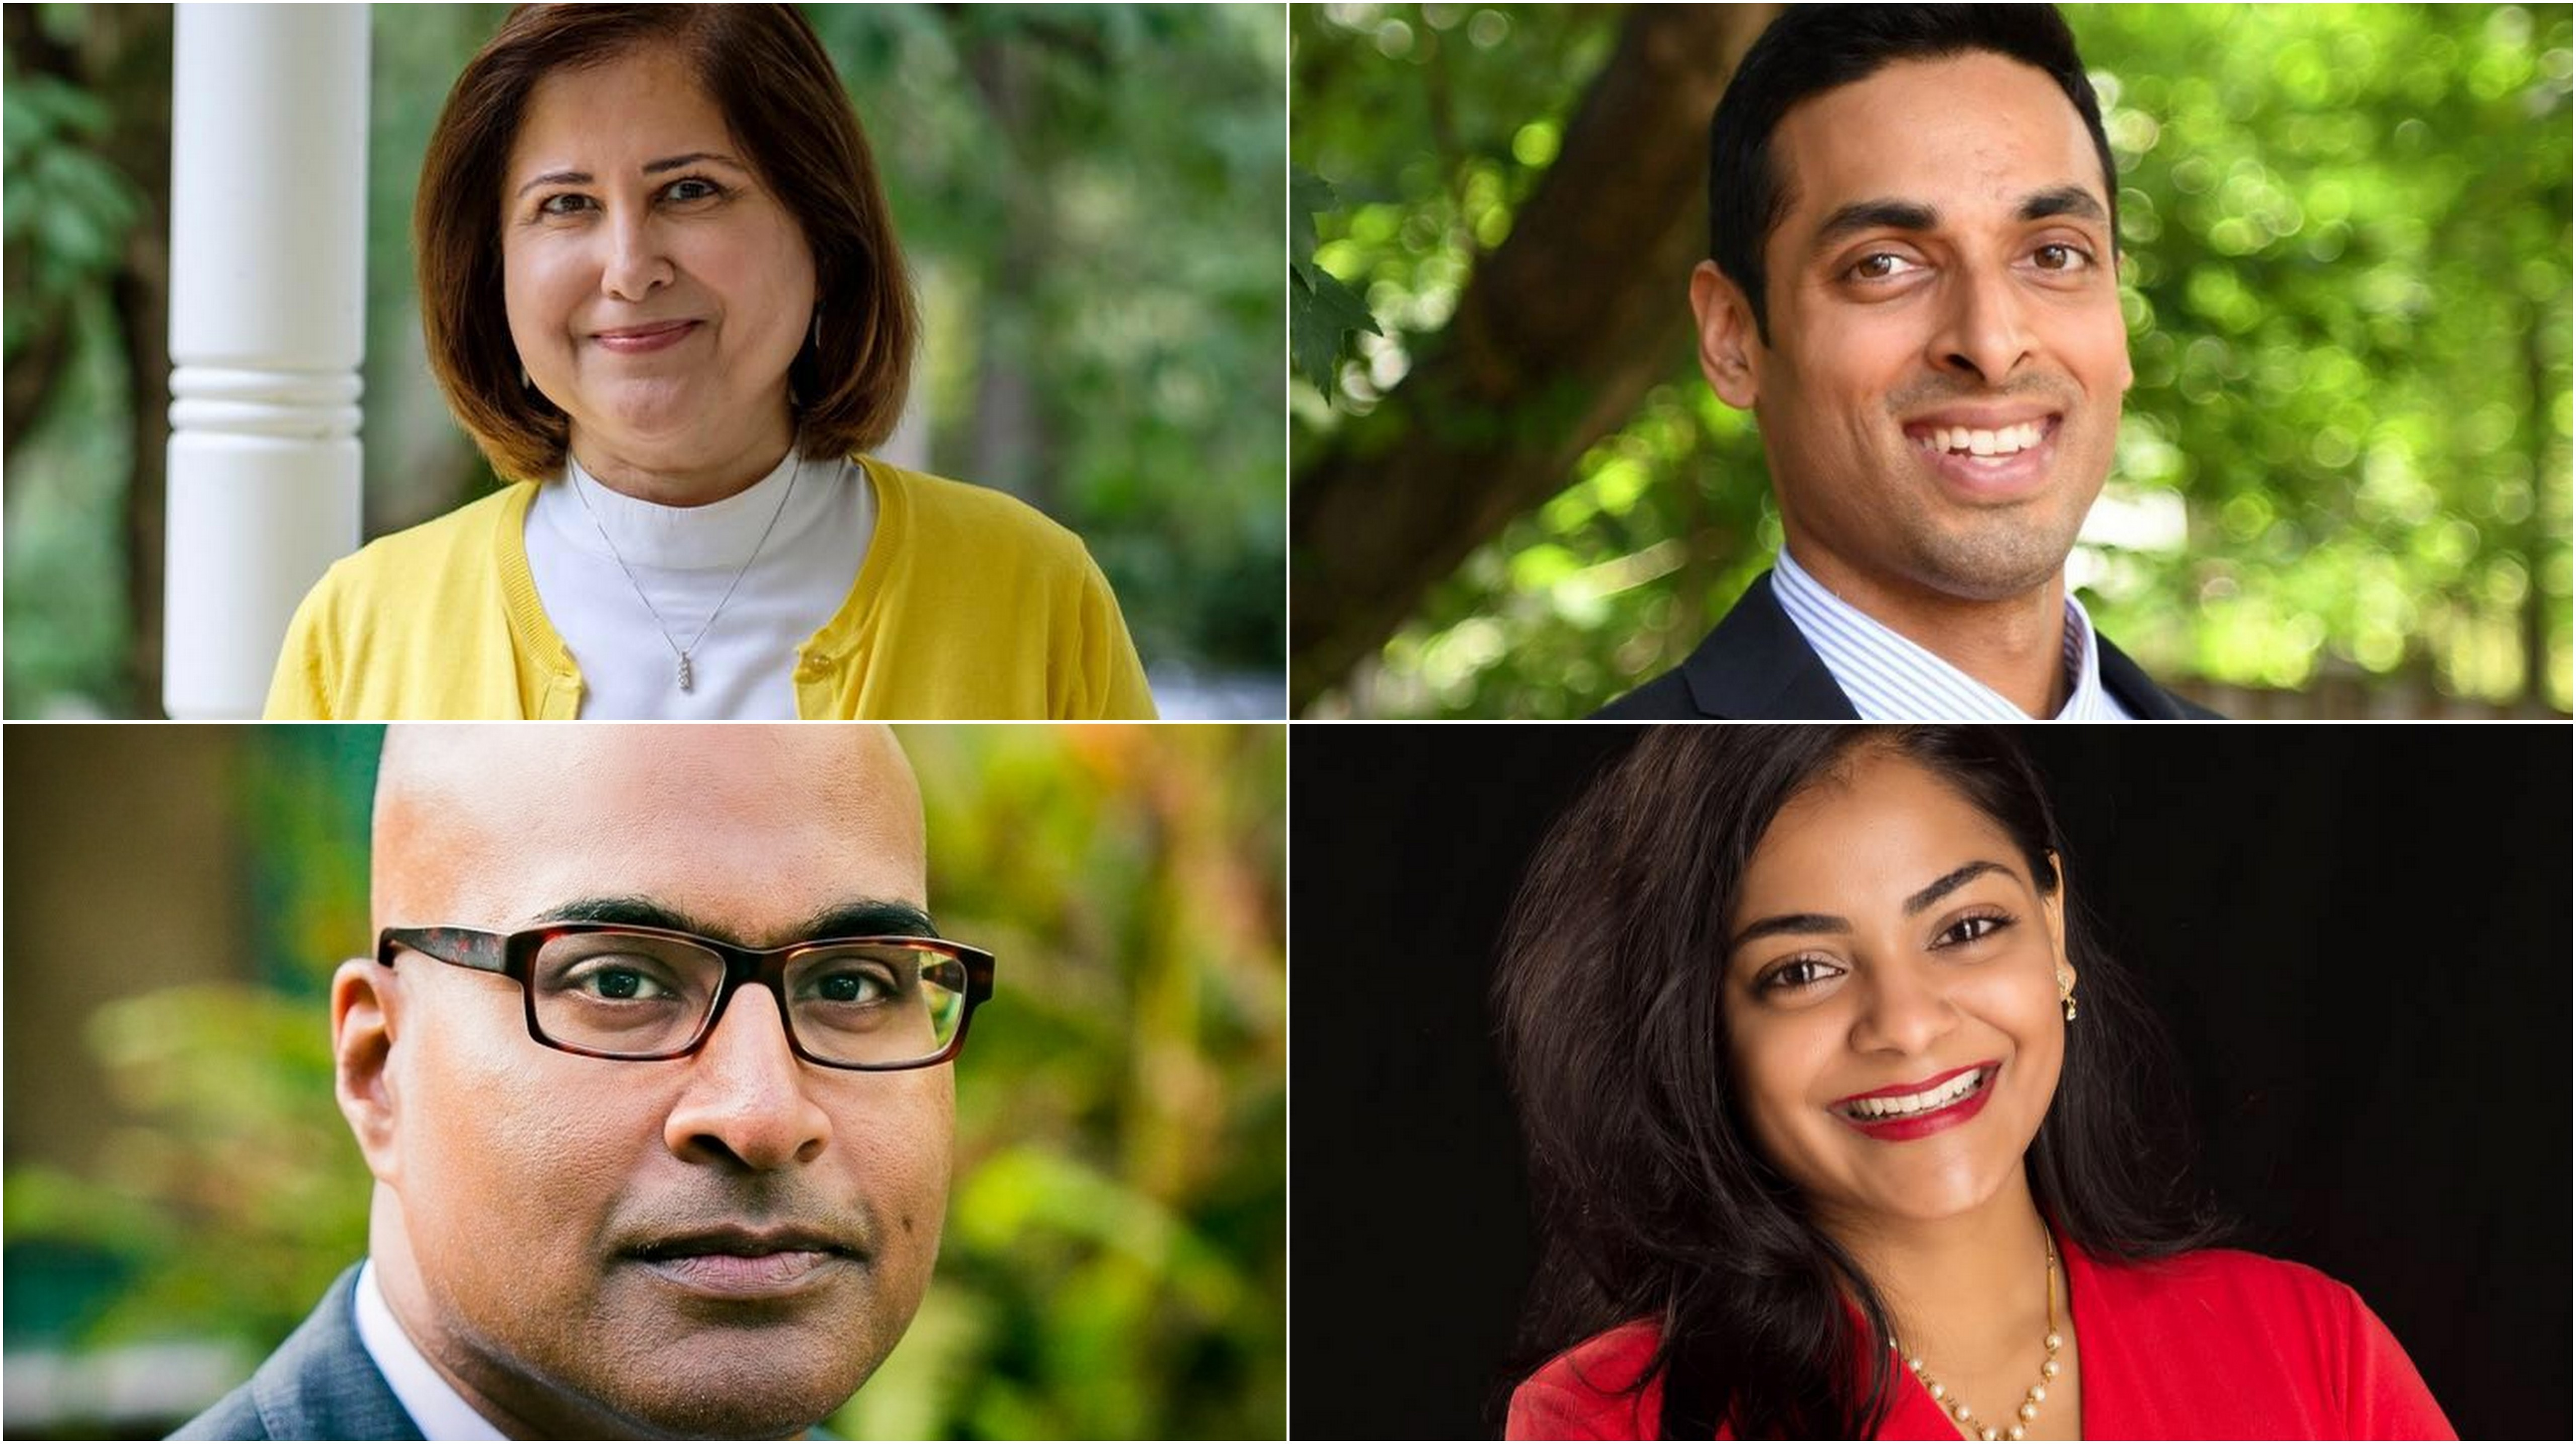 Ghazala Hashmi (top left), Suhas Subramanyam (top right), Mano Raju (bottom left) and Dimple Ajmera (bottom right) have won state and local US elections